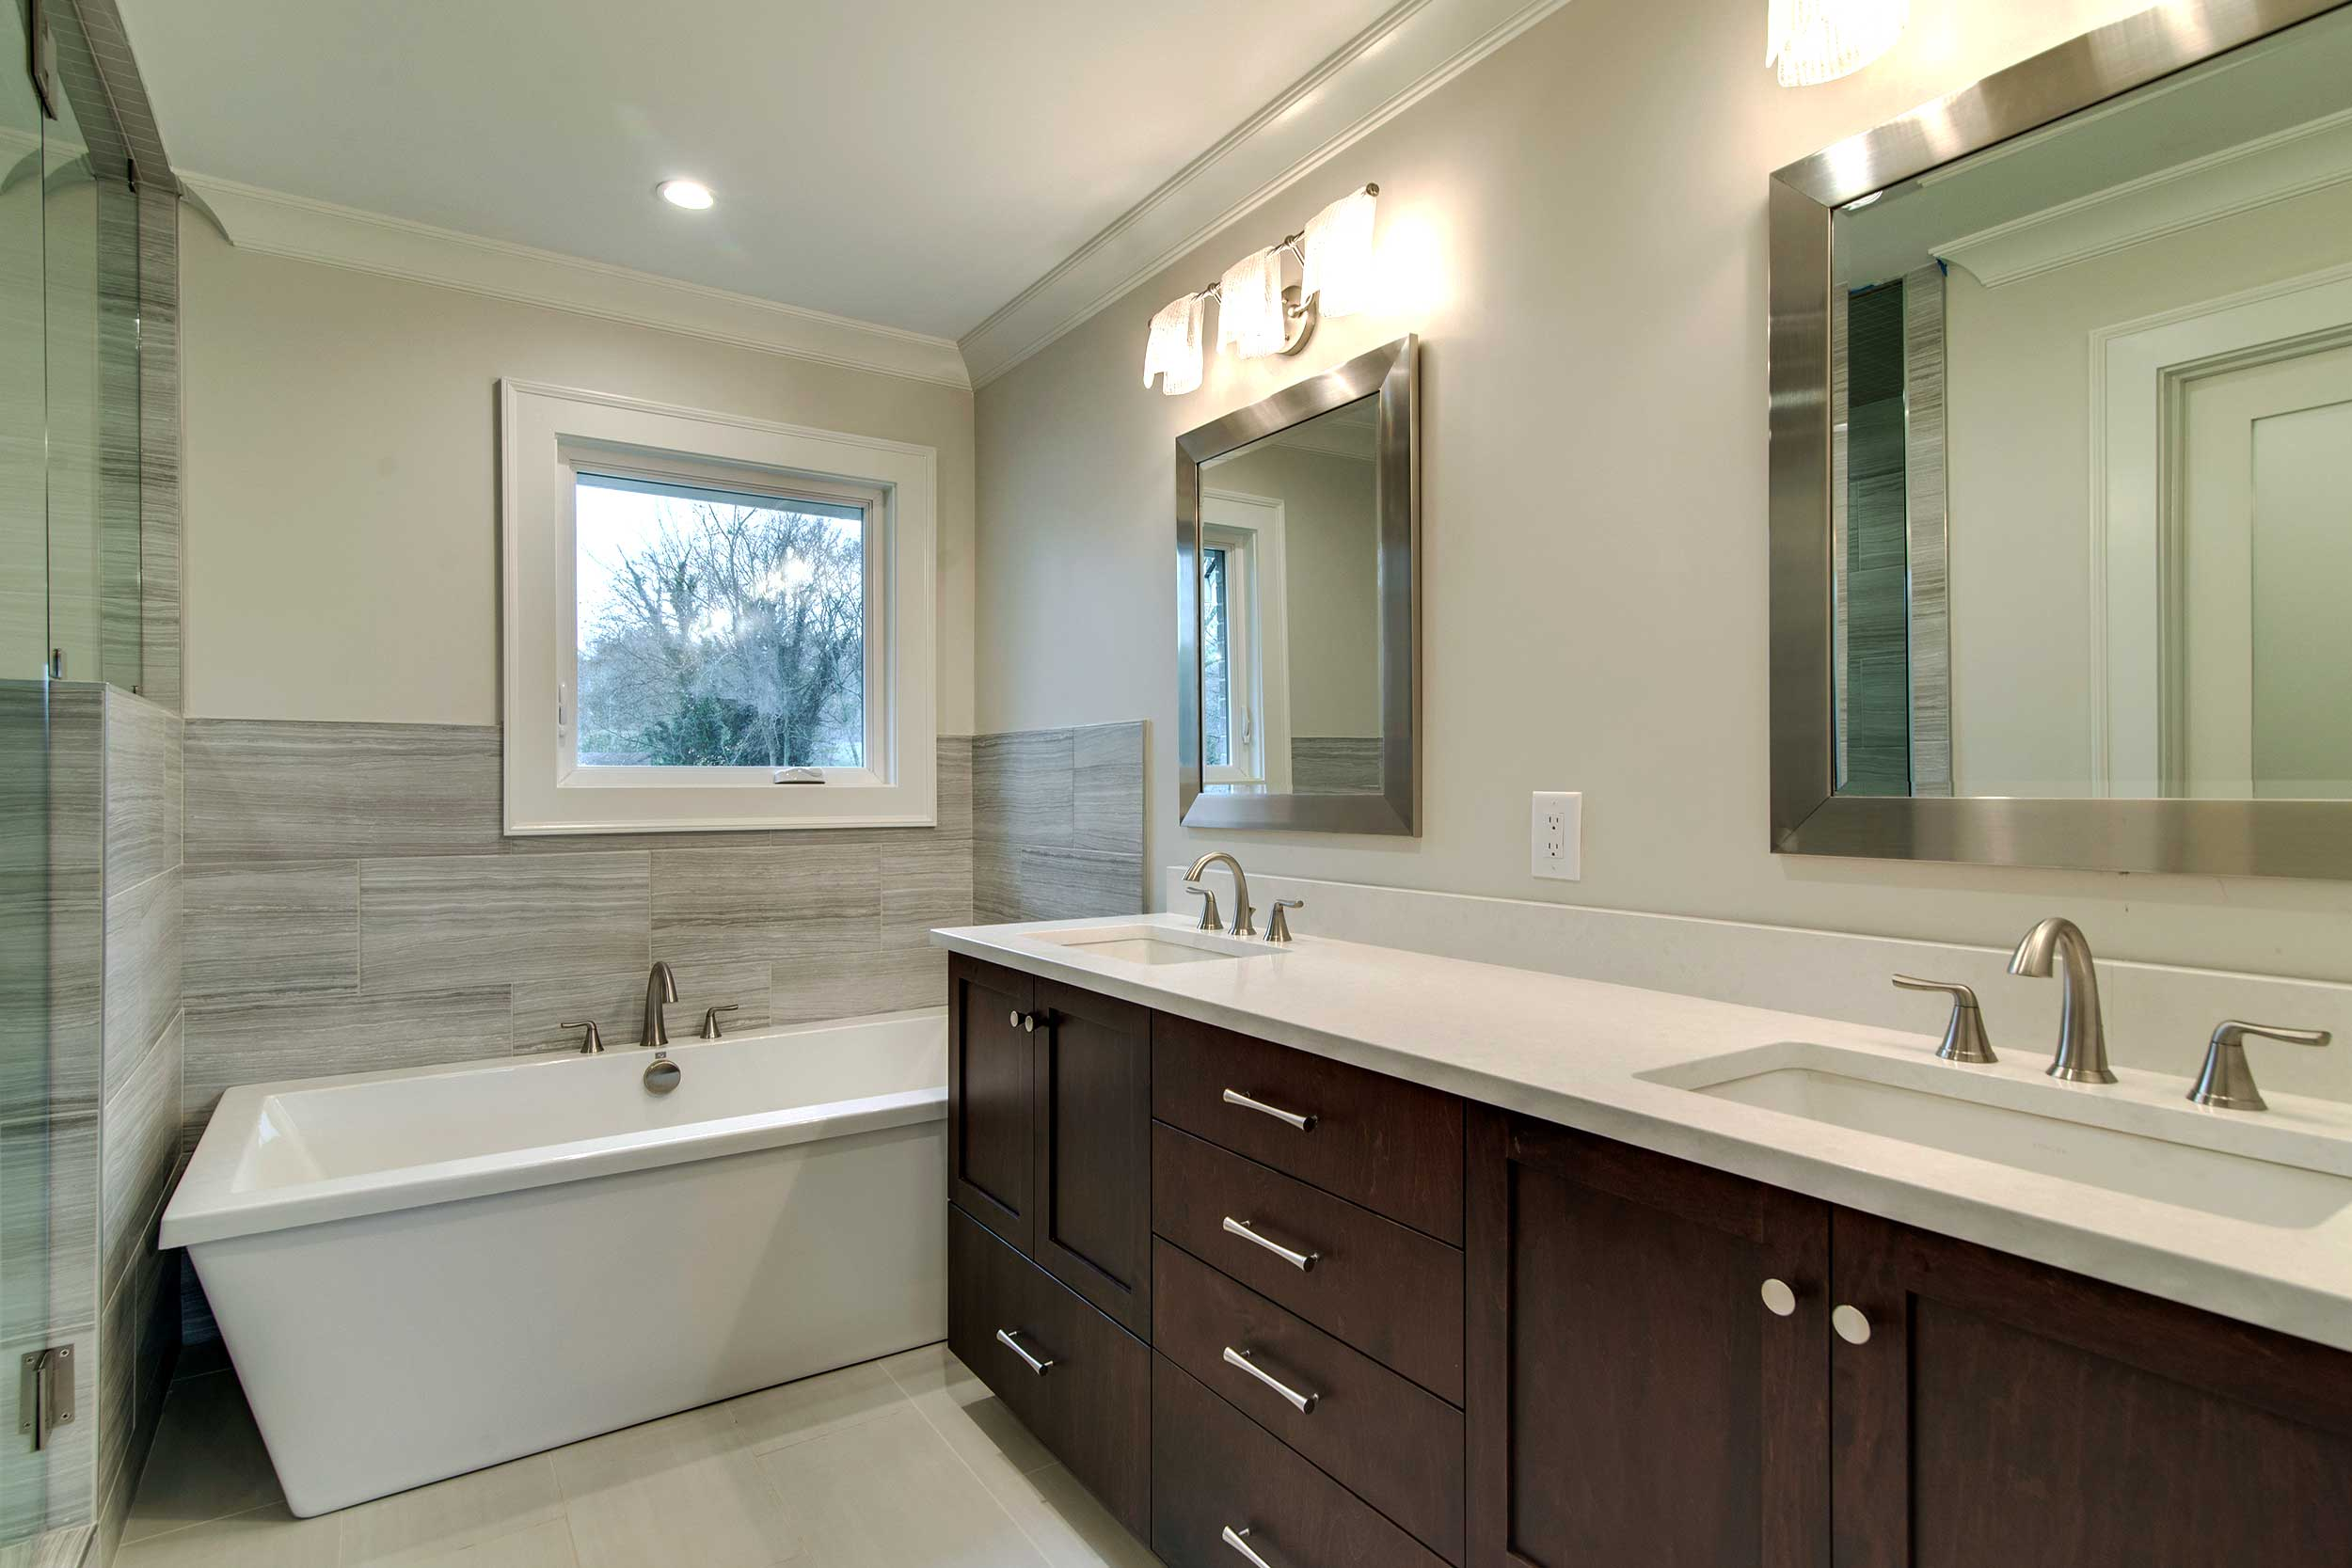 gray_tile_walnut_cabinet_soaking_tub_bathroom.jpg